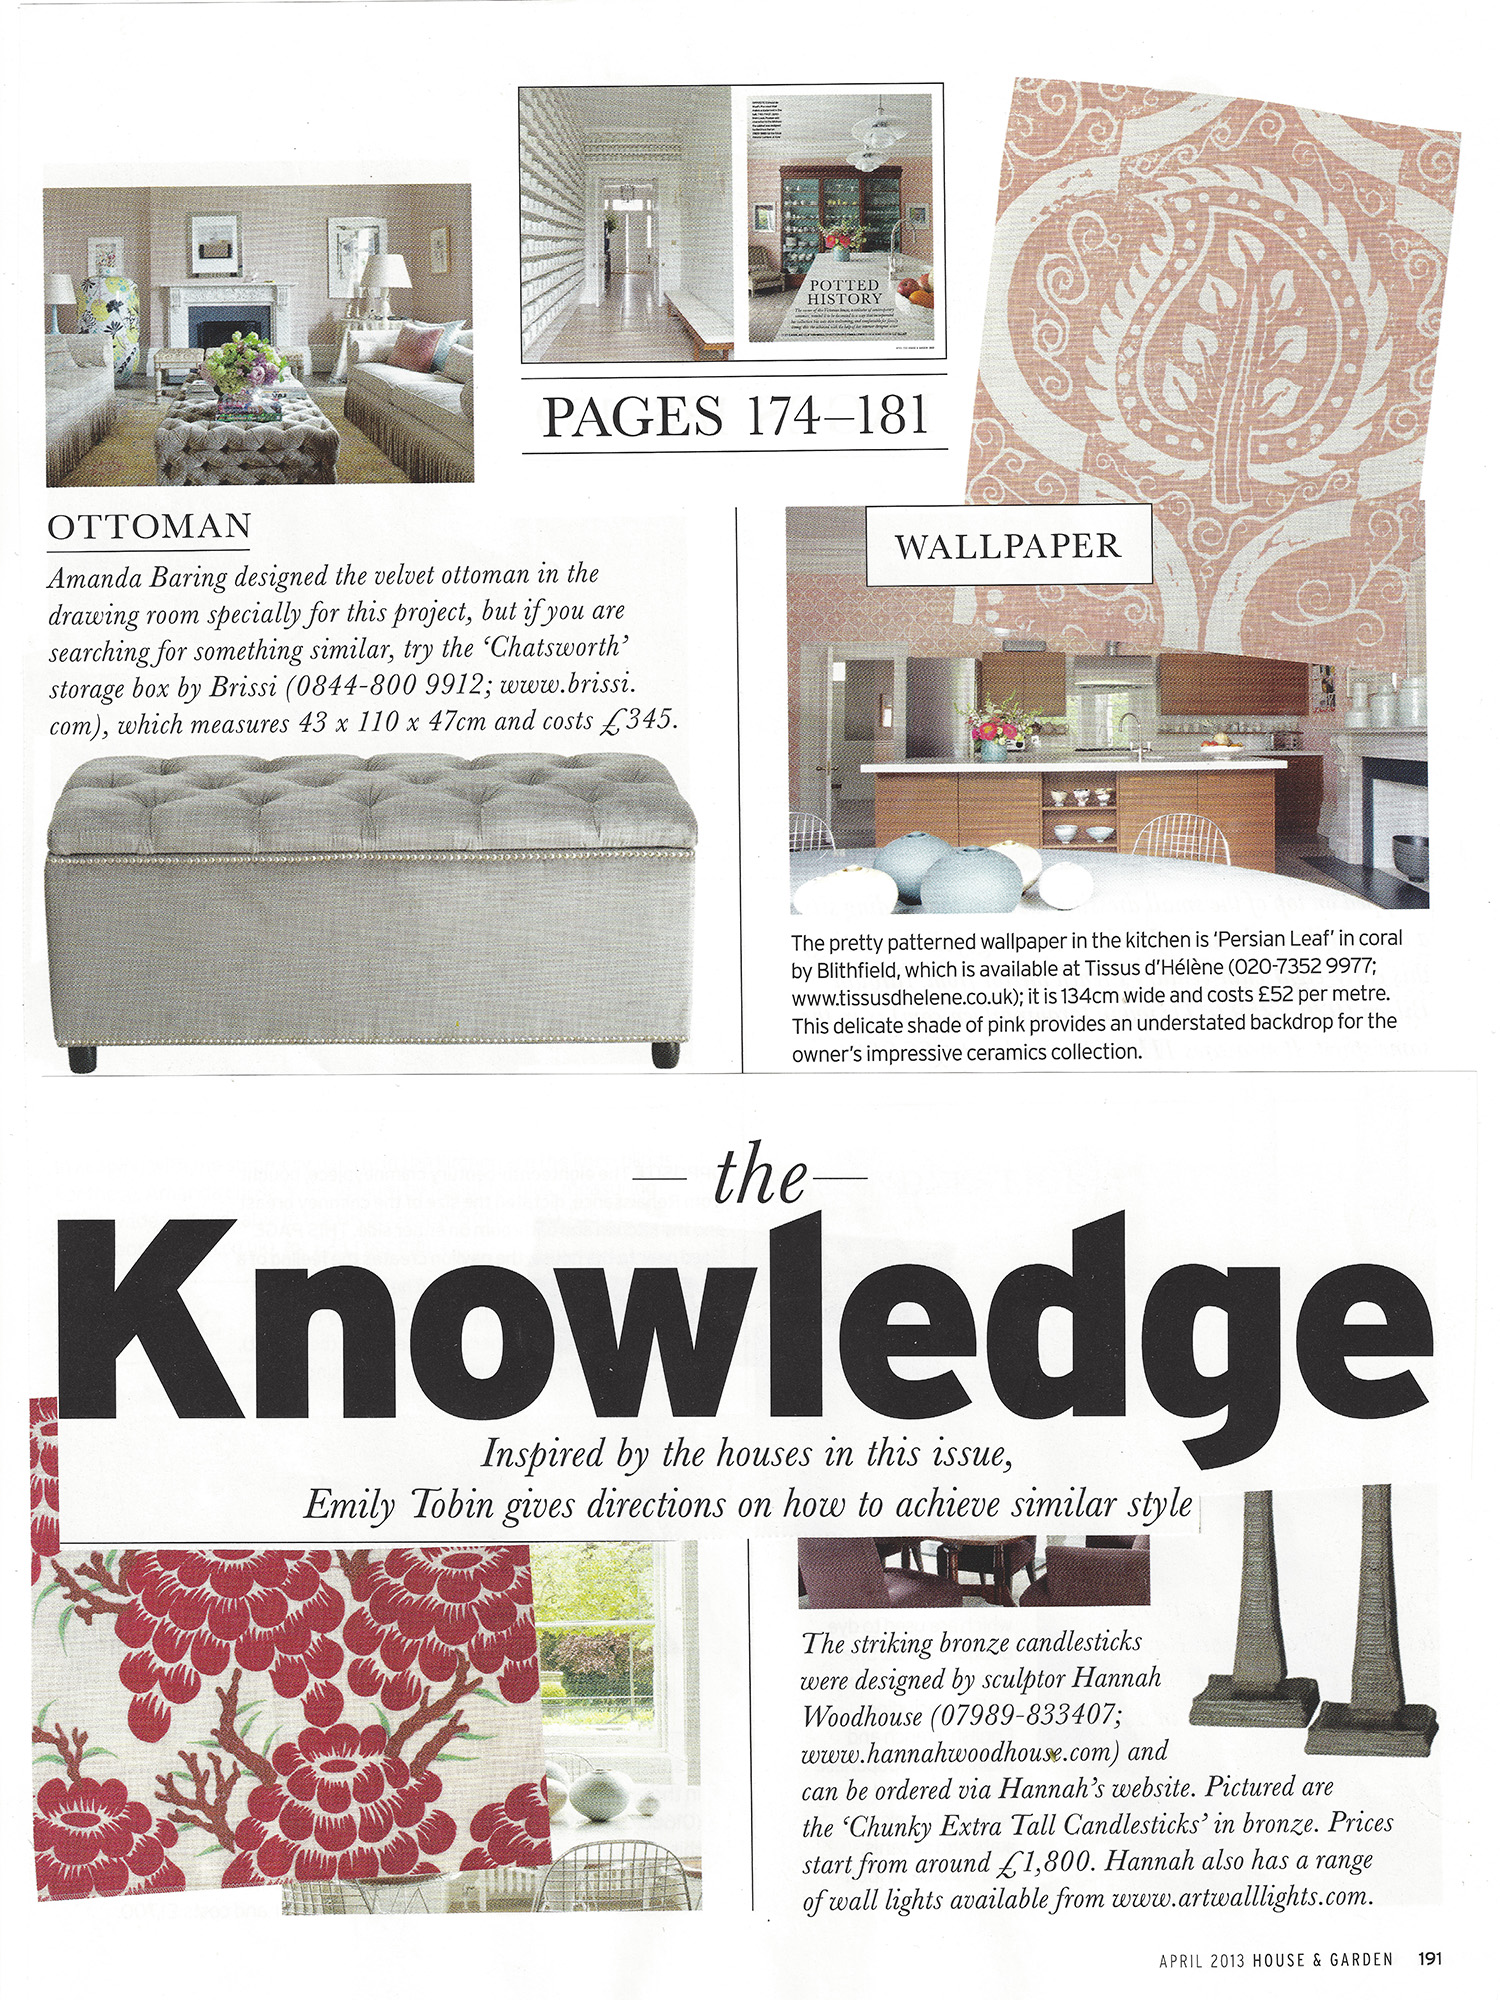 2013 April-House & Garden Page 2 of 2.jpeg